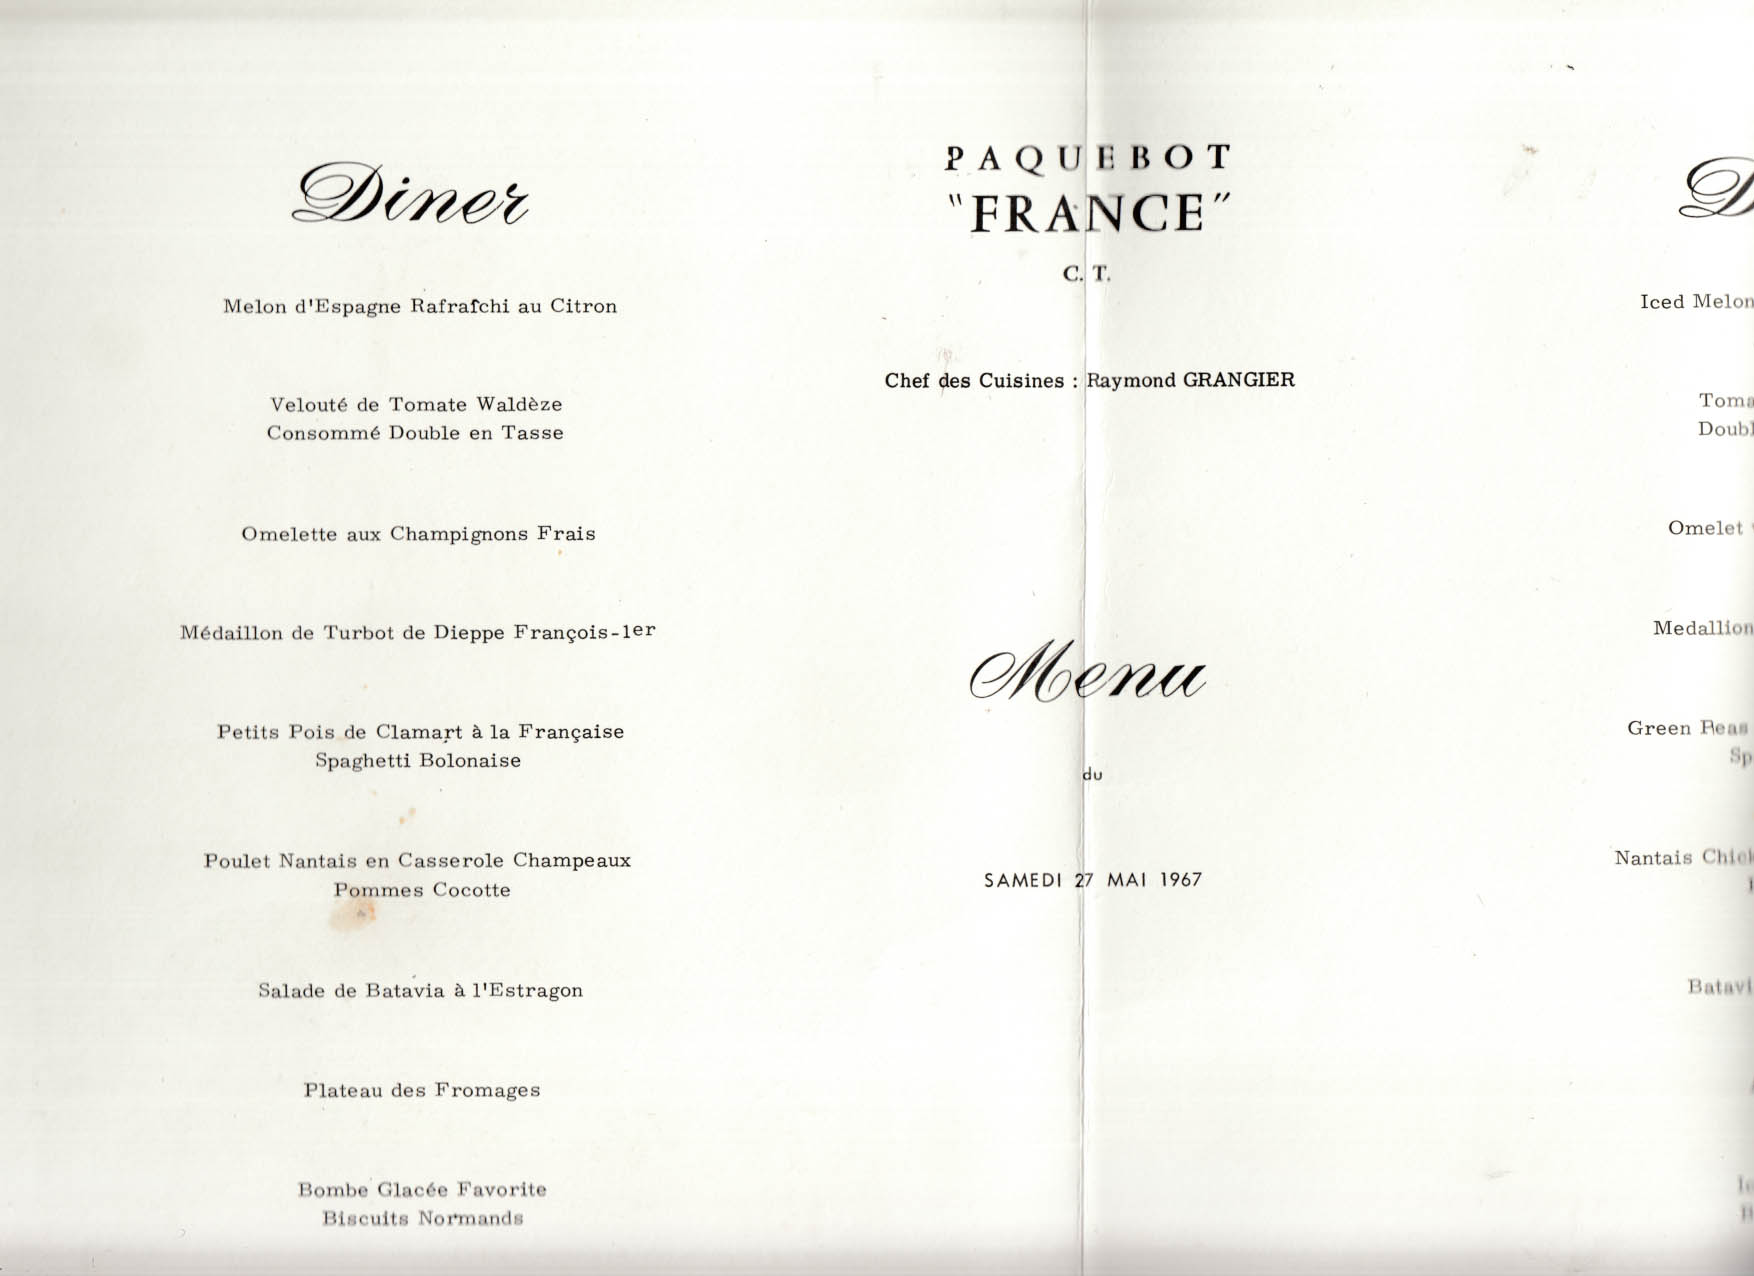 French Line S S France Tourist Class Dinner Menu 5/27 1967